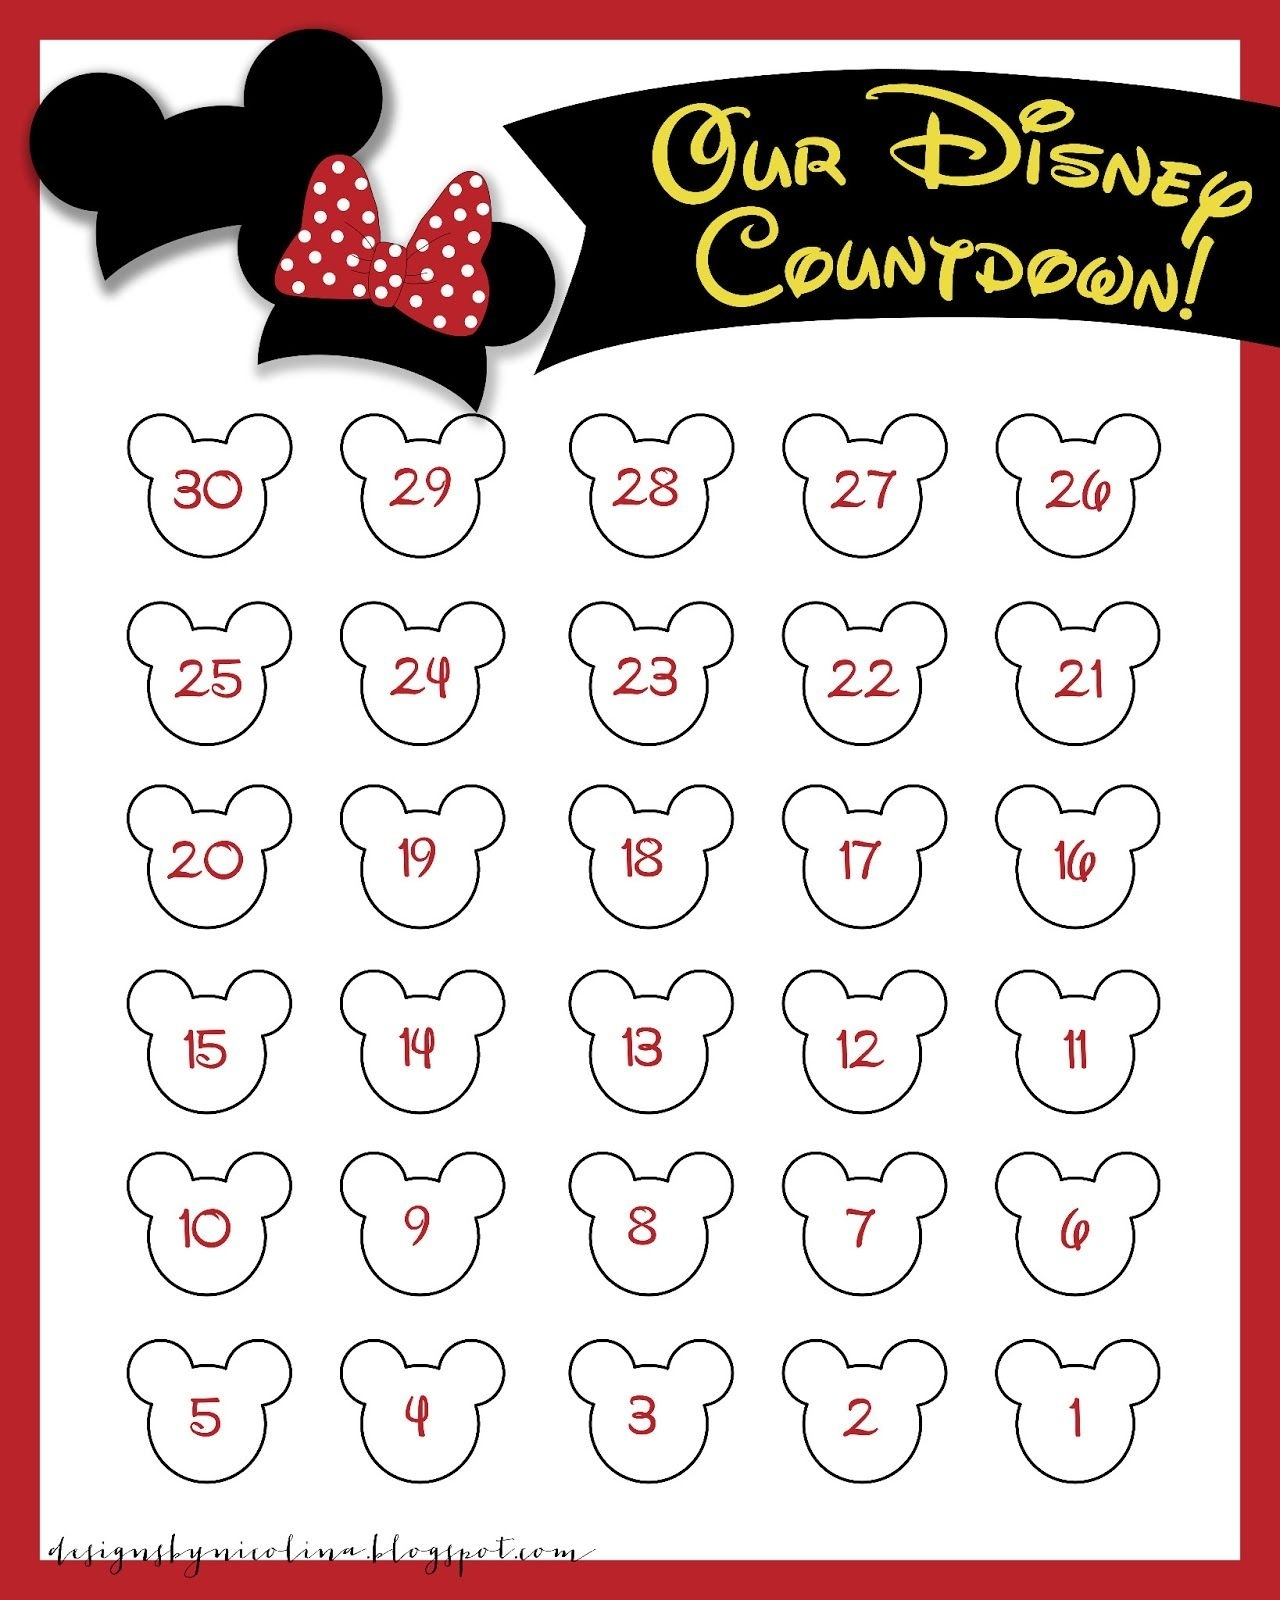 Disneyland Countdown Calendar | Designs By Nicolina: Disney Printable Countdown To Disney Calendar